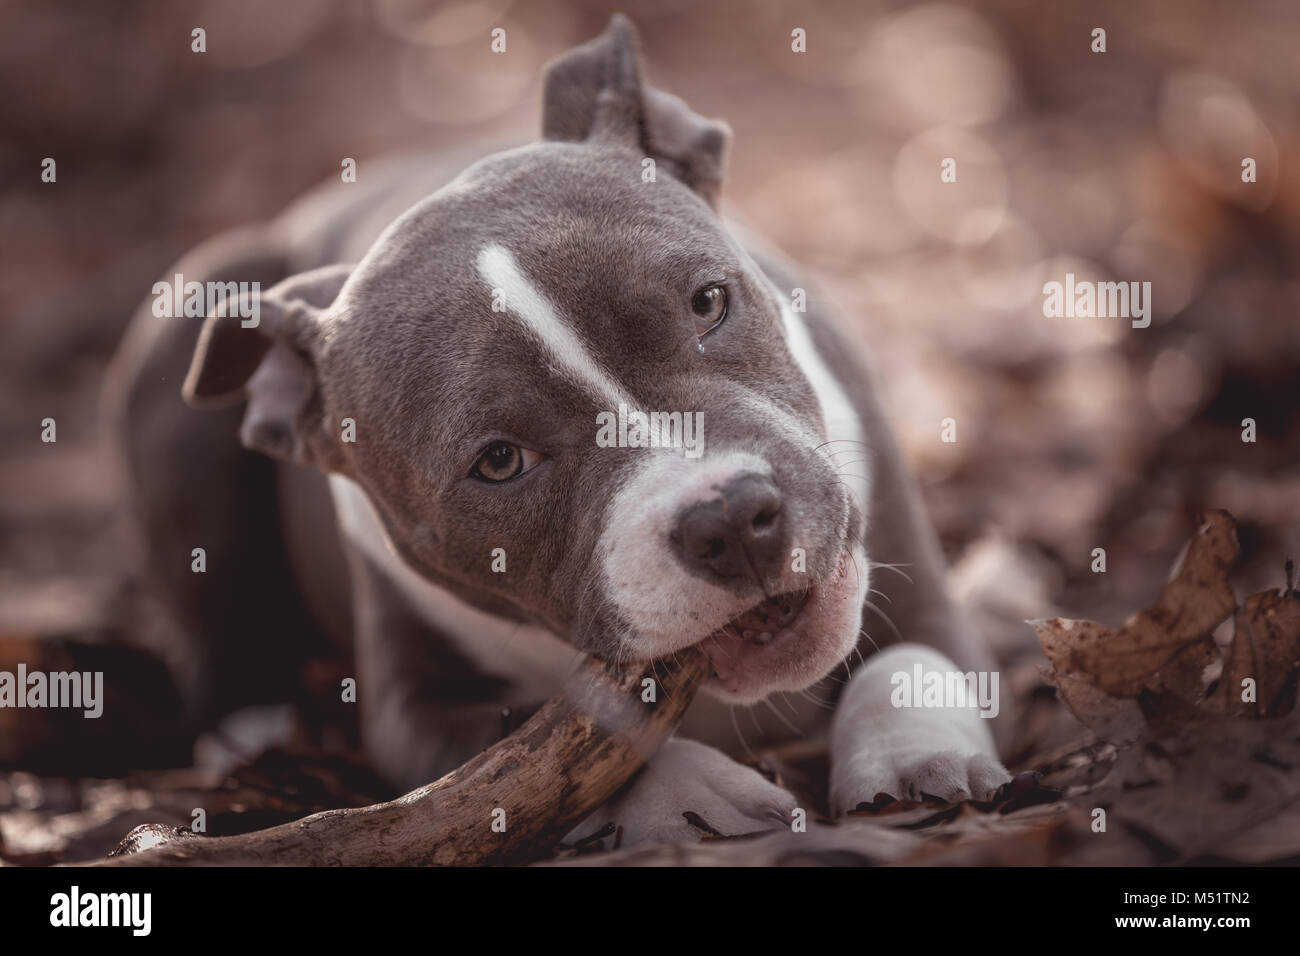 American bully - Stock Image